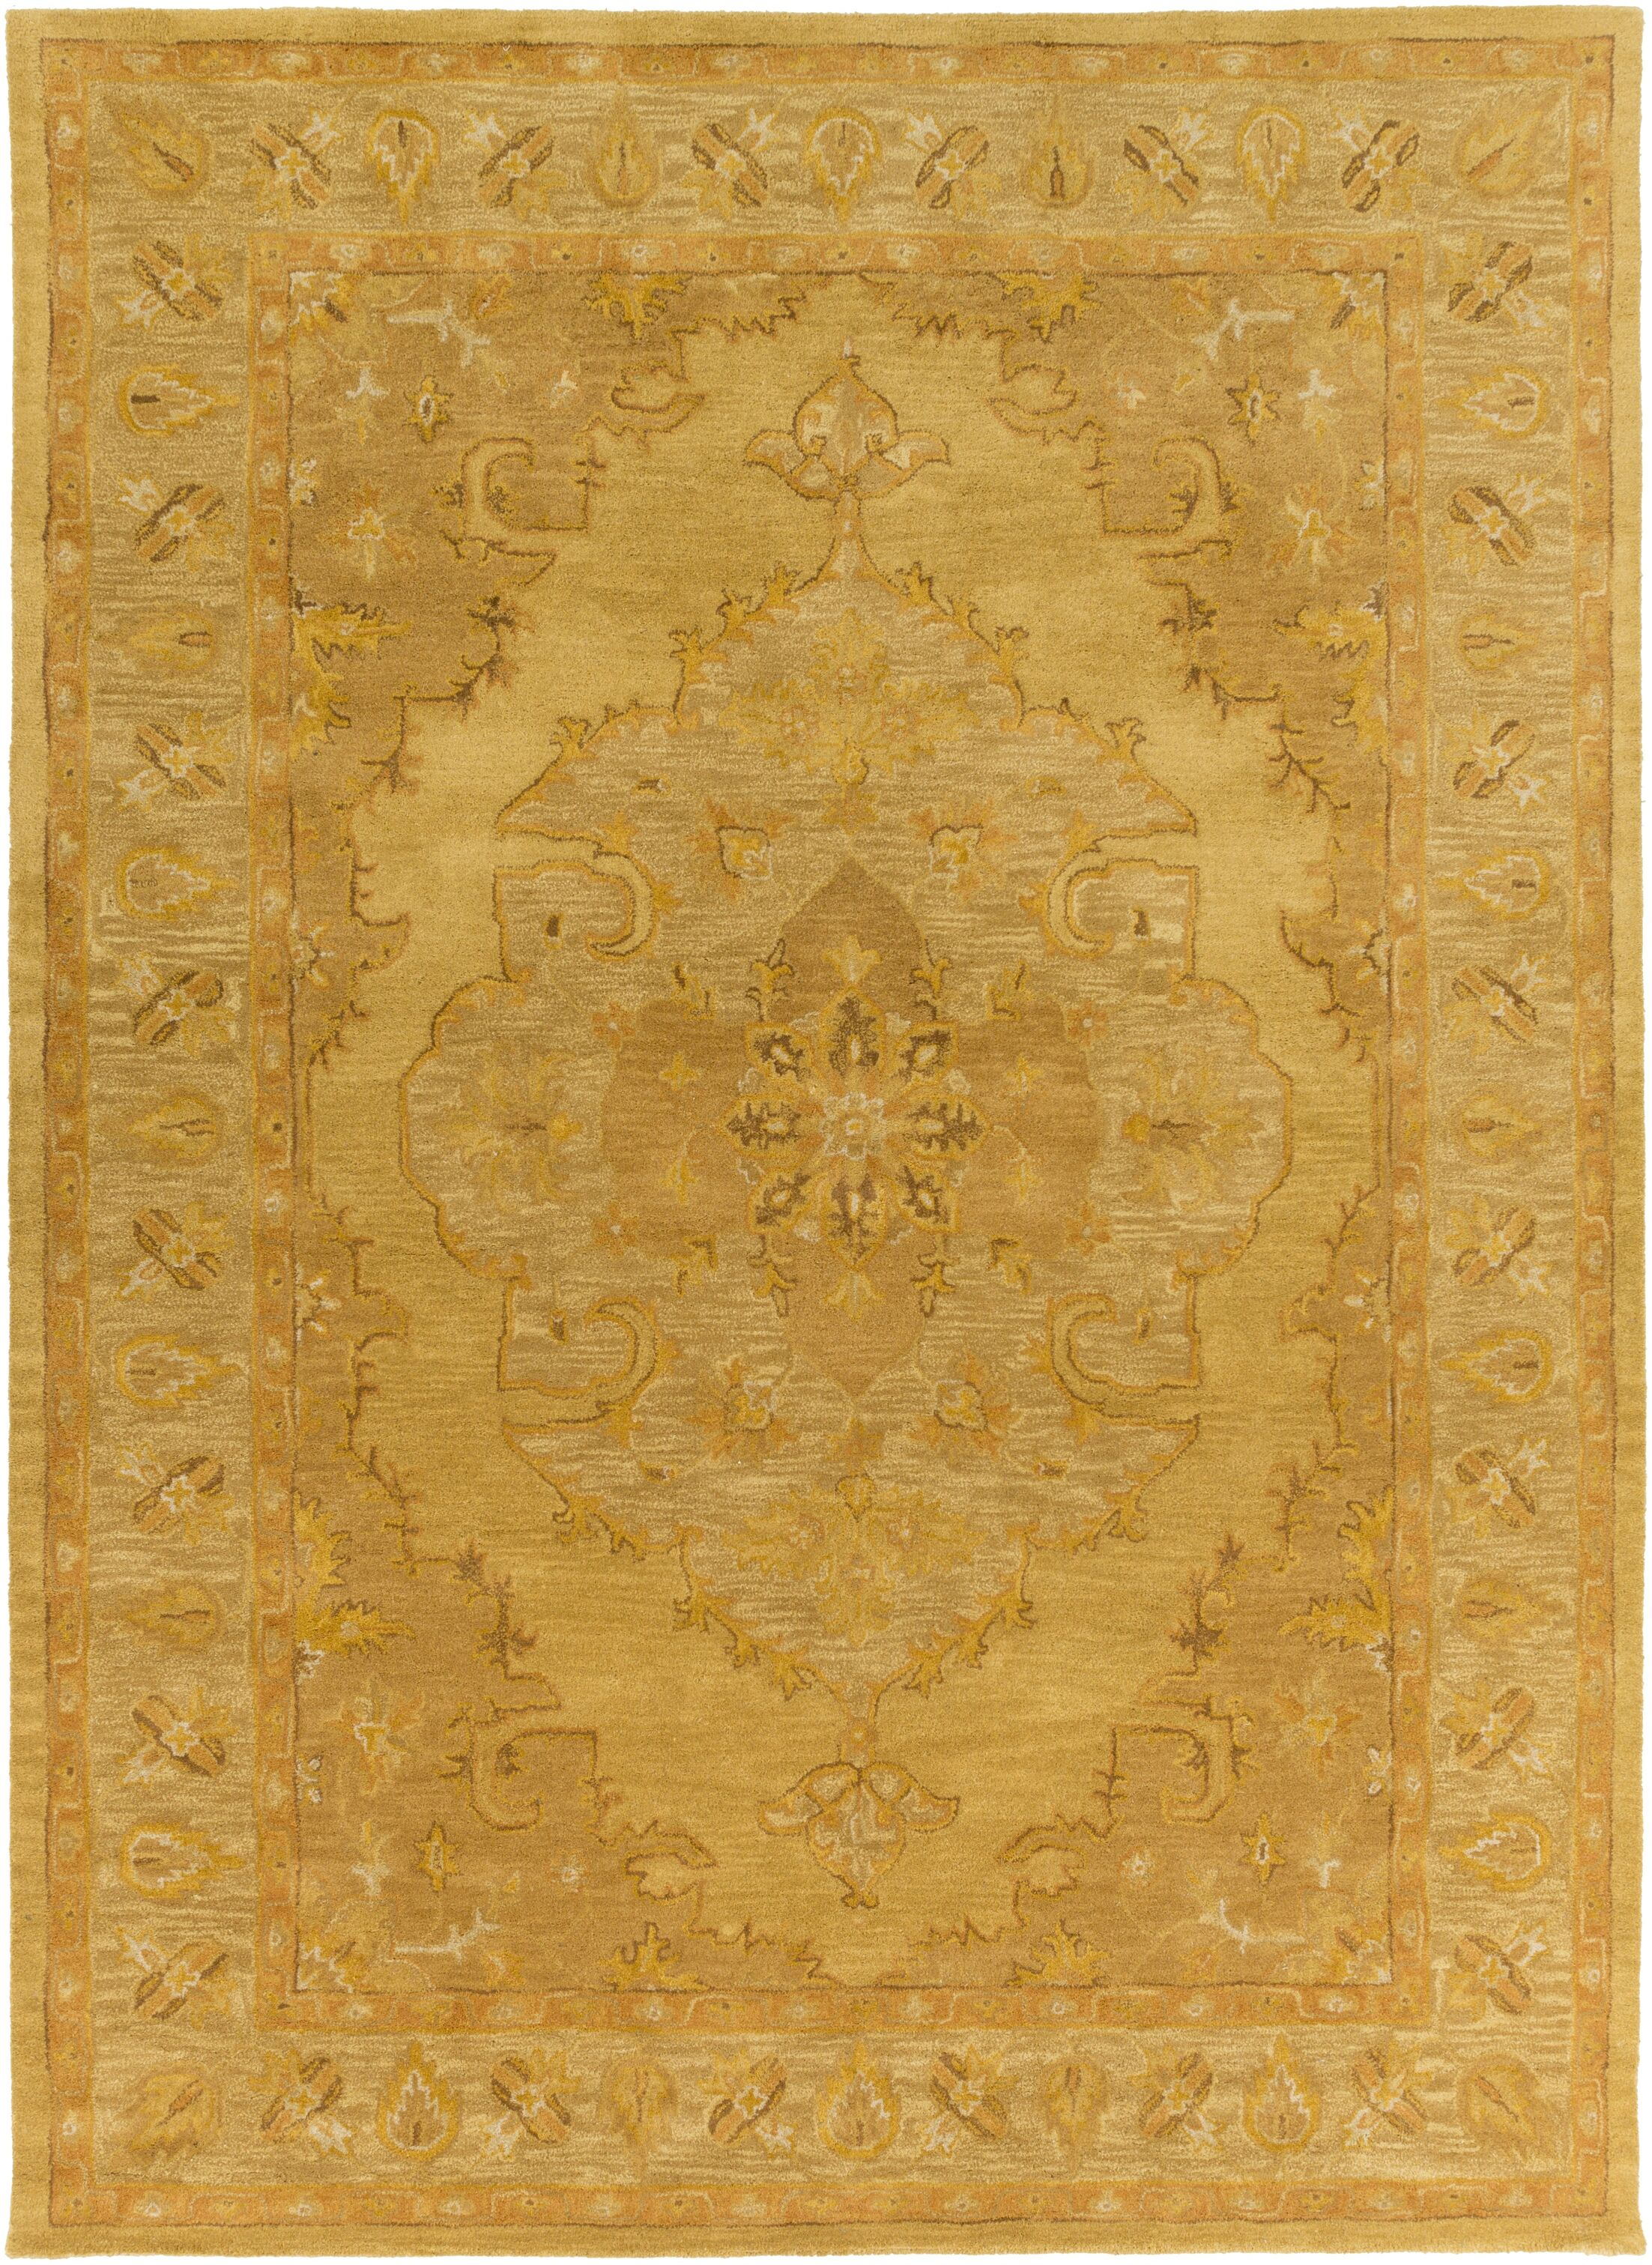 Eaddy Hand-Tufted Sunflower/Gold Area Rug Rug Size: Rectangle 5' x 8'